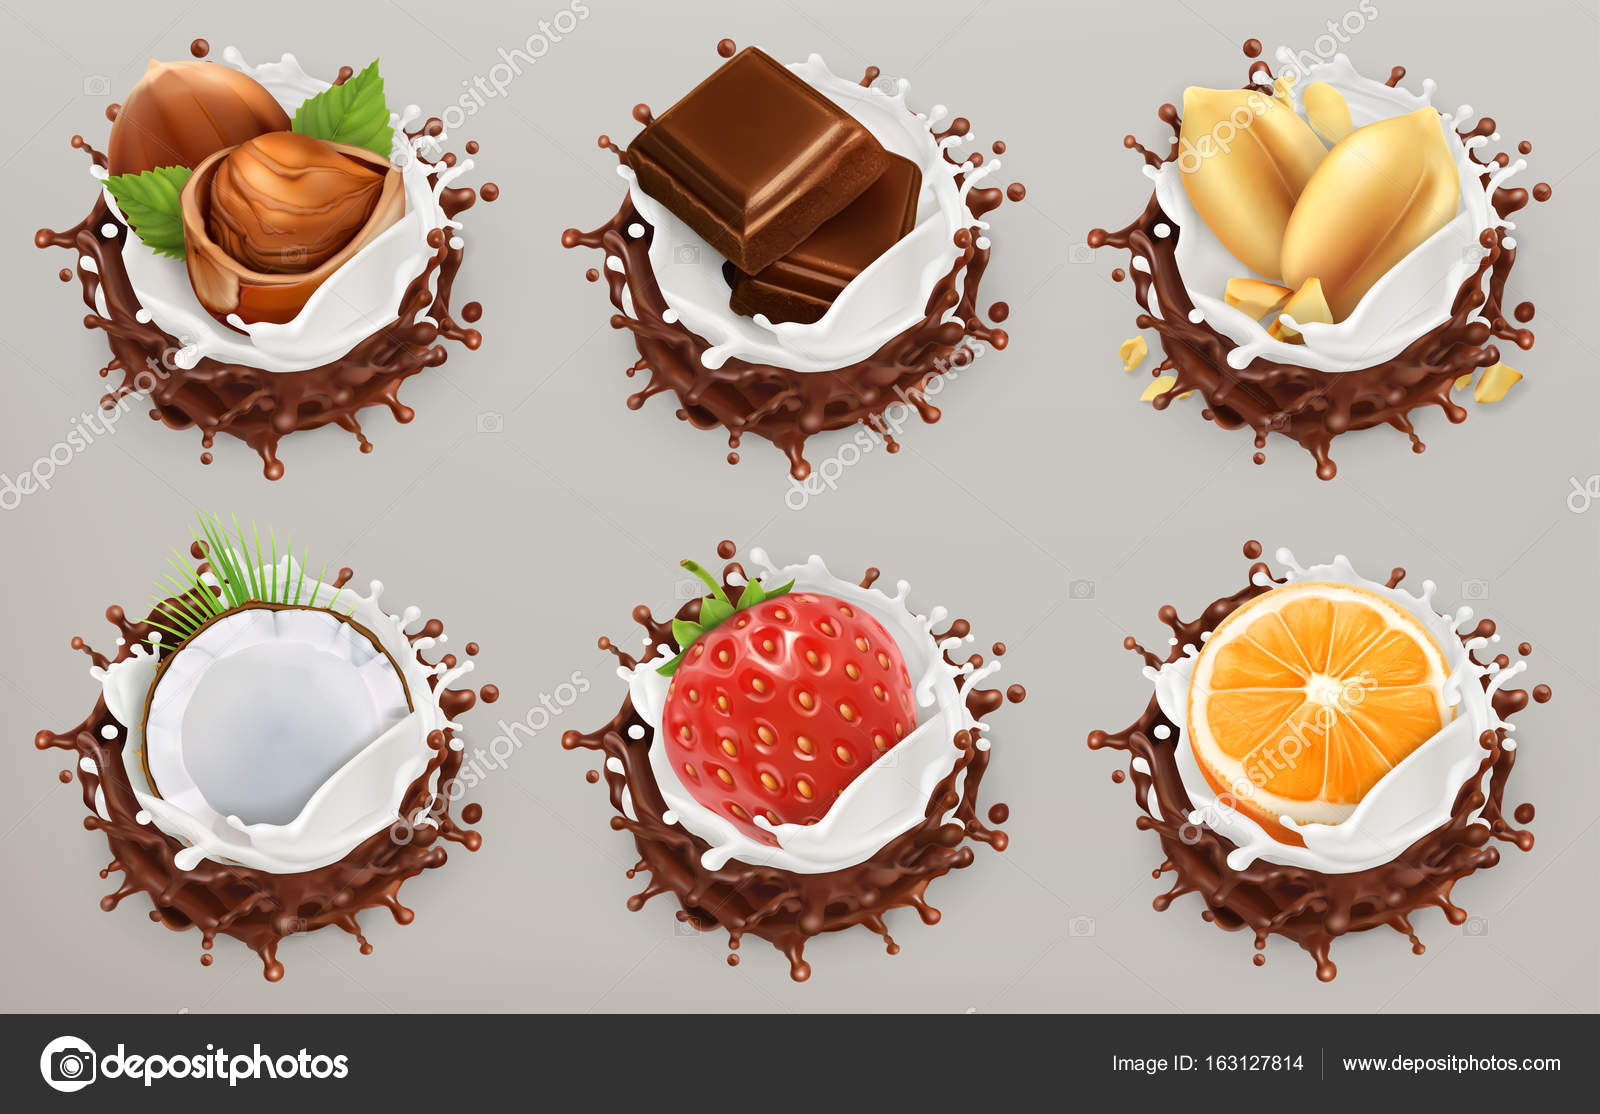 ᐈ chocolate splash stock vectors royalty free chocolate splash illustrations download on depositphotos https depositphotos com 163127814 stock illustration fruit berries and nuts milk html